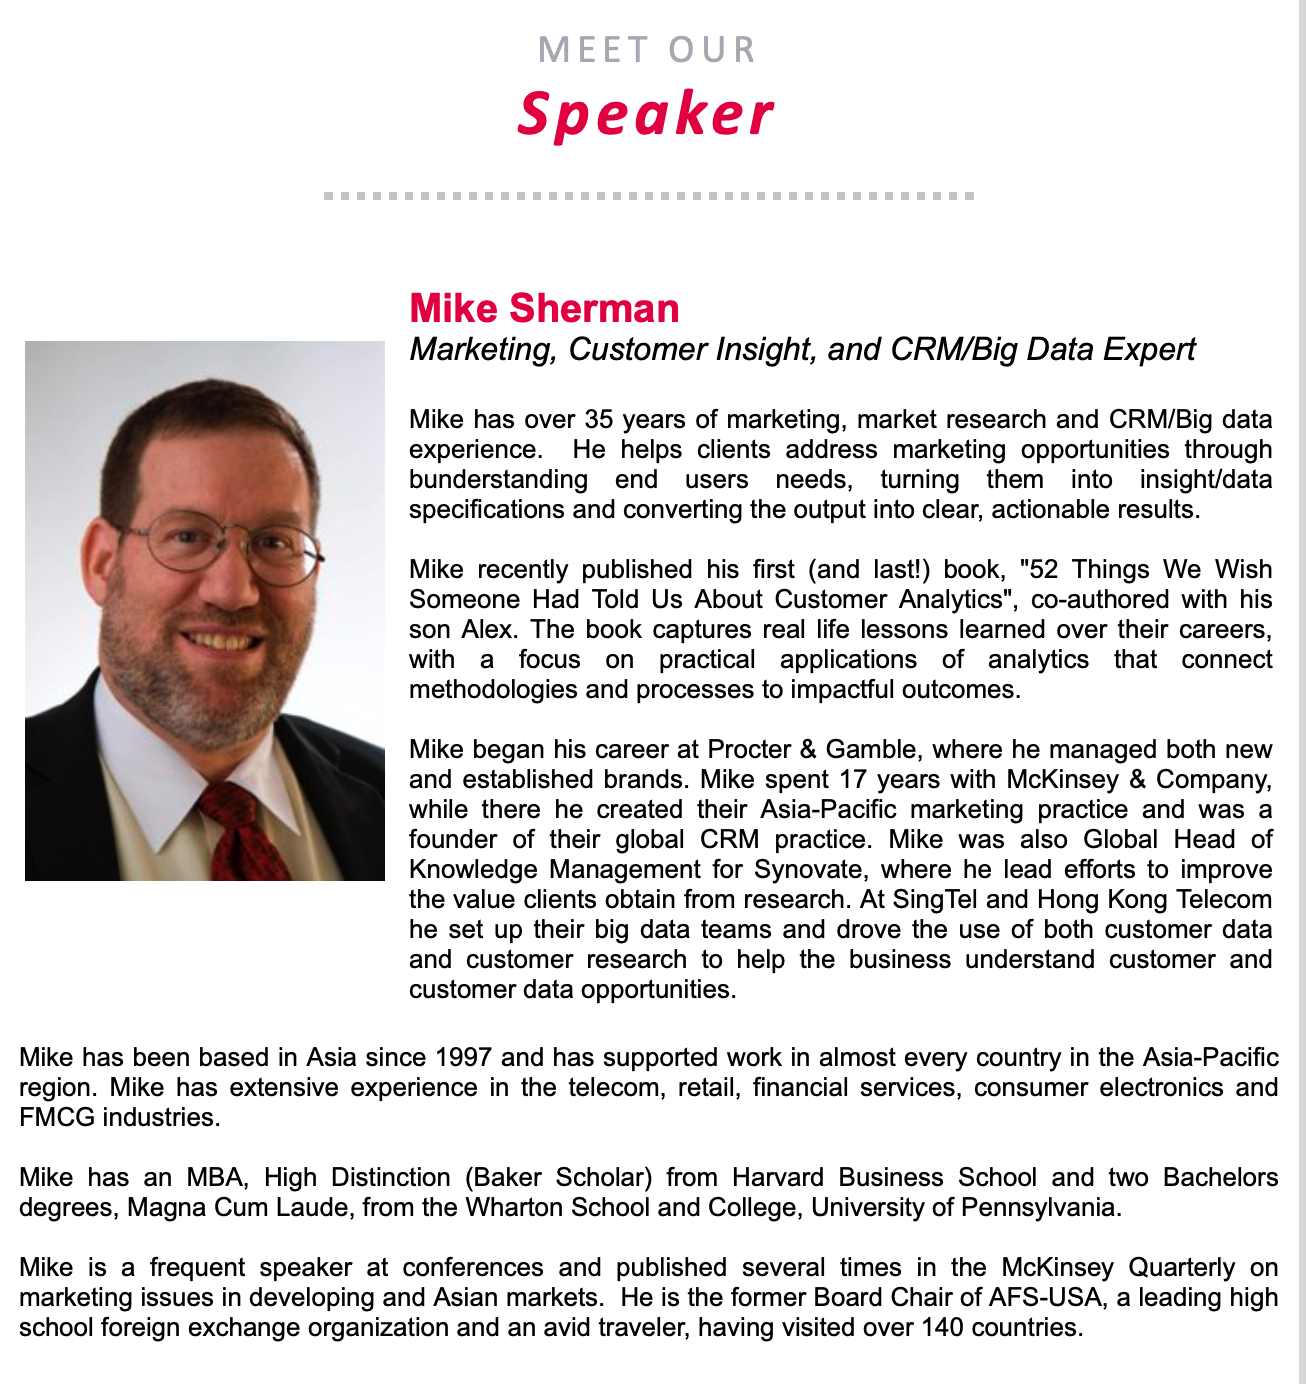 Meet our speaker - Mike Sherman